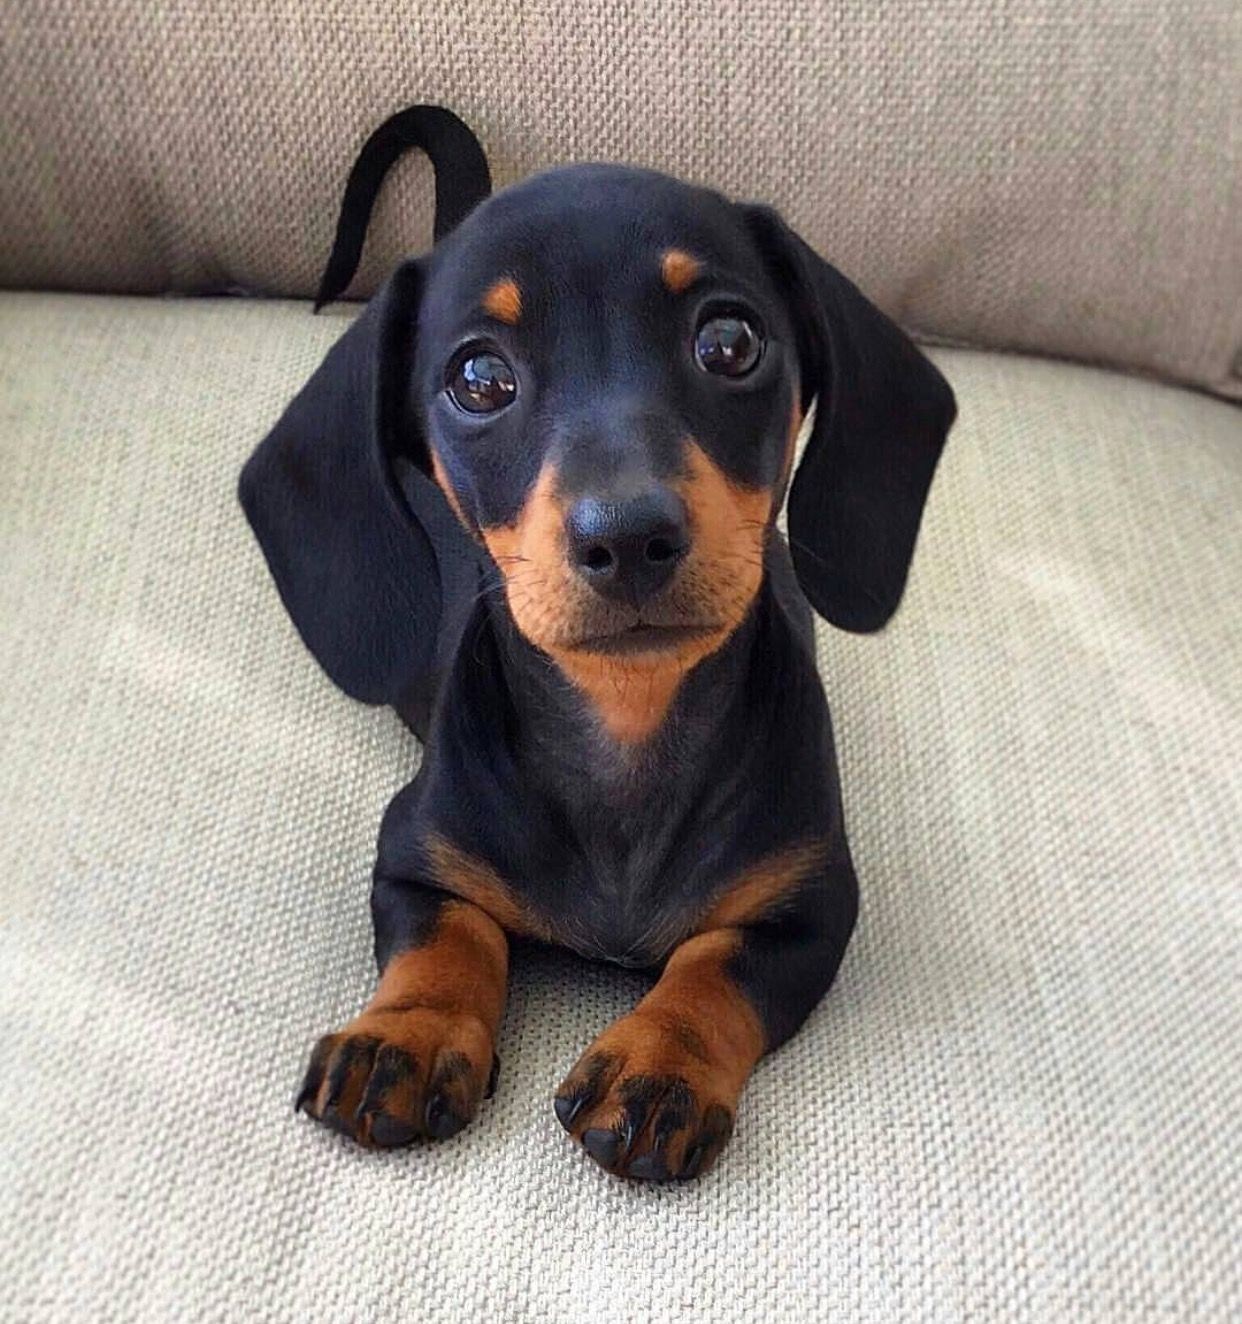 Dachshund Pup Puppies Cute Baby Animals Dachshund Puppies